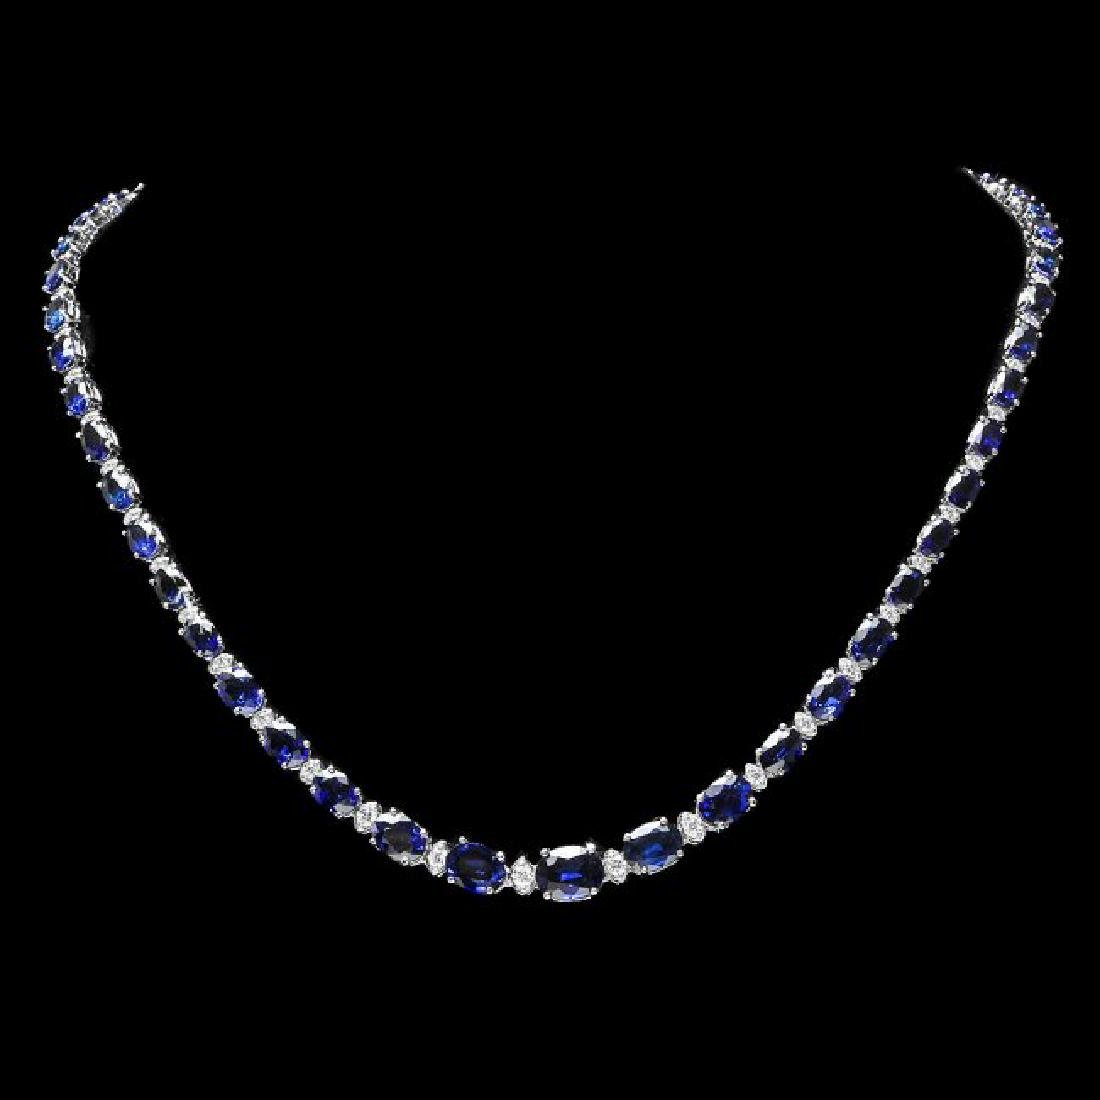 14k Gold 37.00ct Sapphire 1.60ct Diamond Necklace